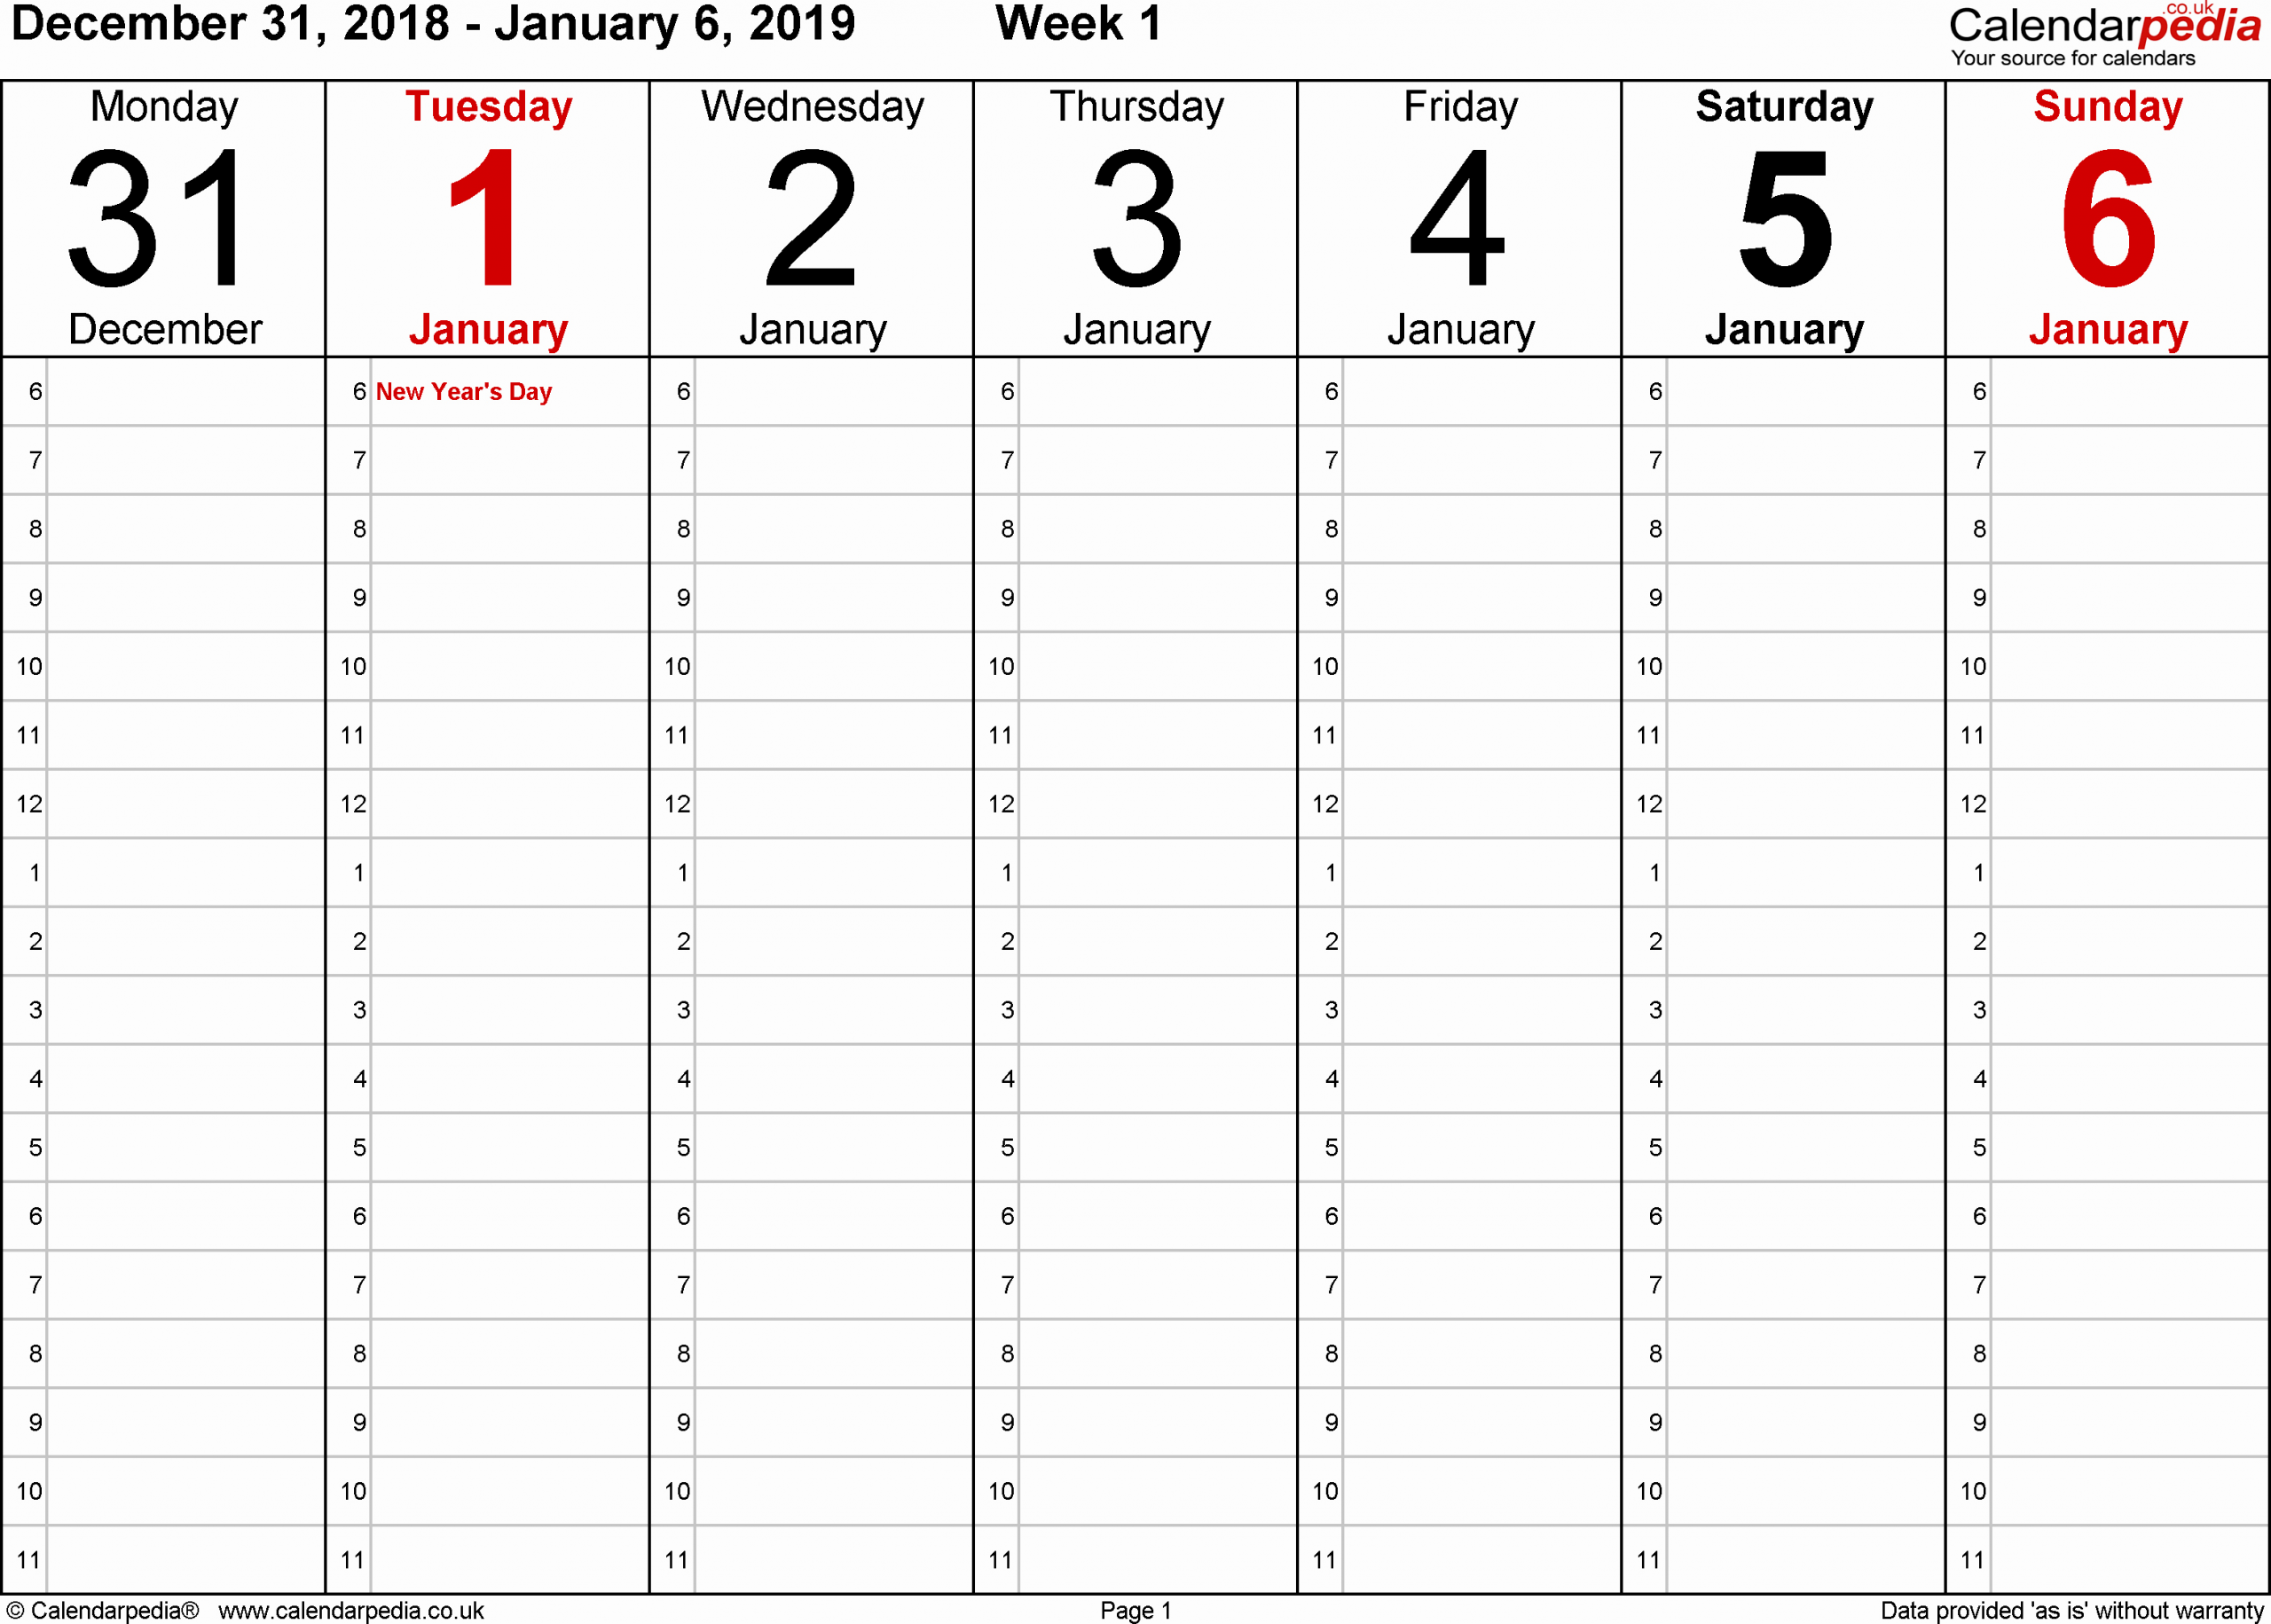 One Day Schedule Template Inspirational Weekly Calendar 2019 Uk Free Printable Templates for Pdf